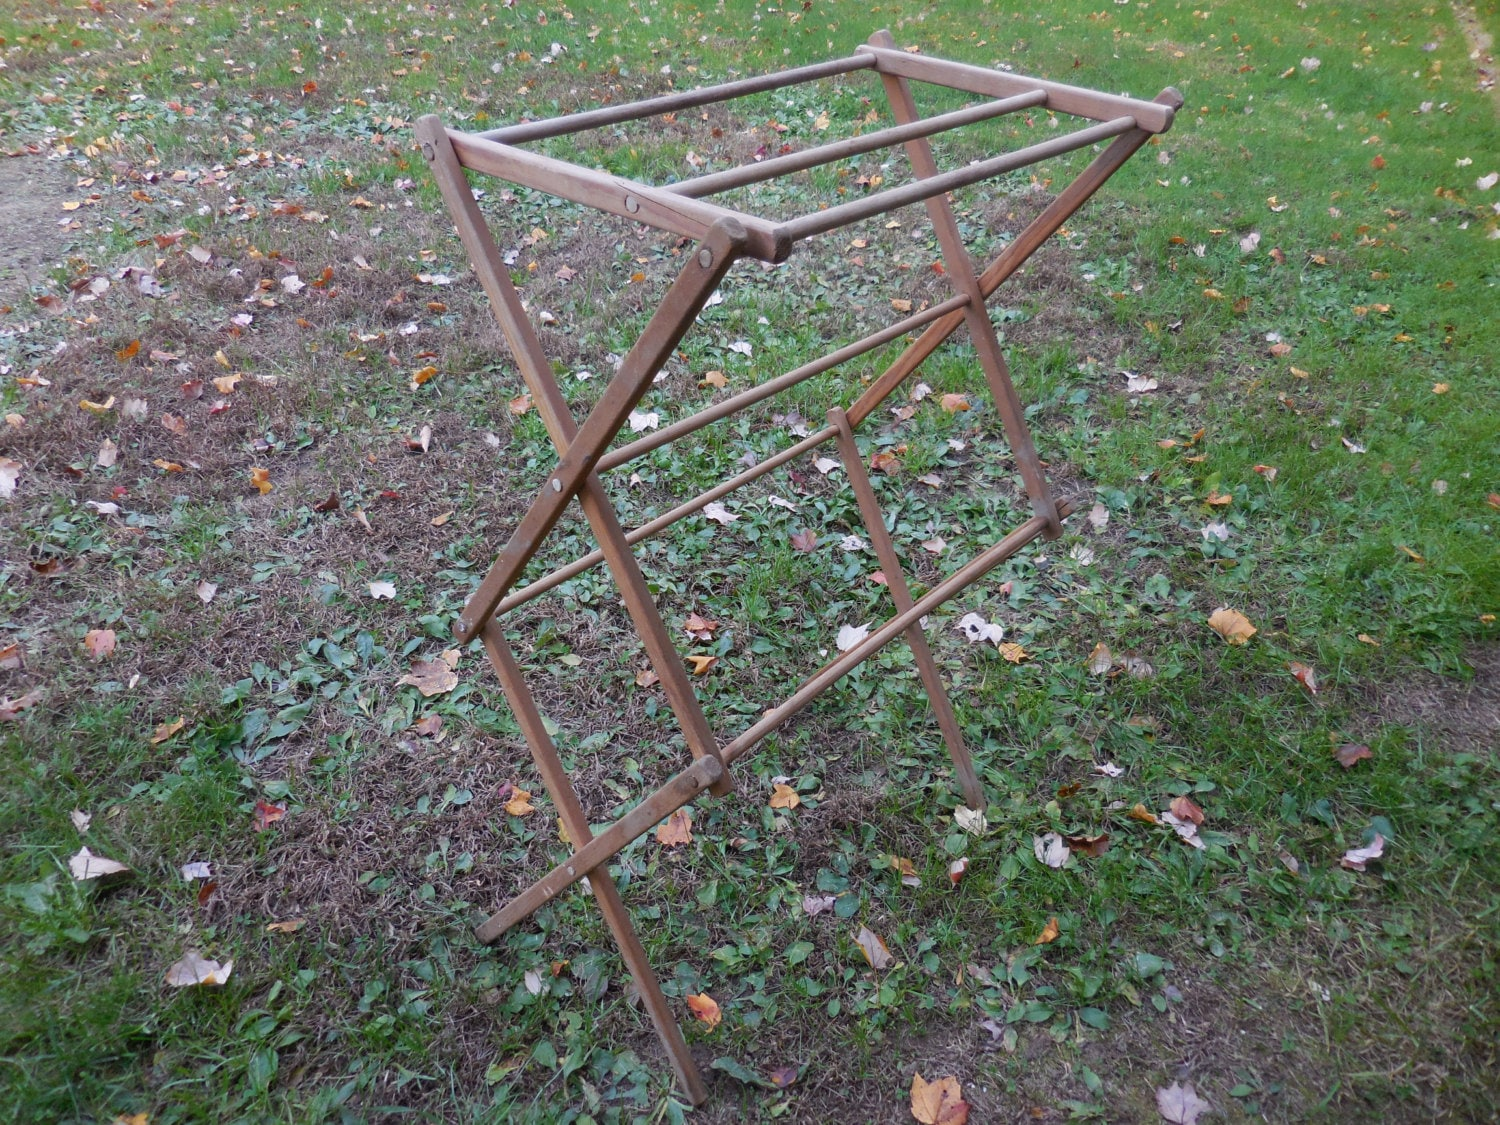 Vintage 1920s To 1940s Wood Clothing Dryer Drying Rack